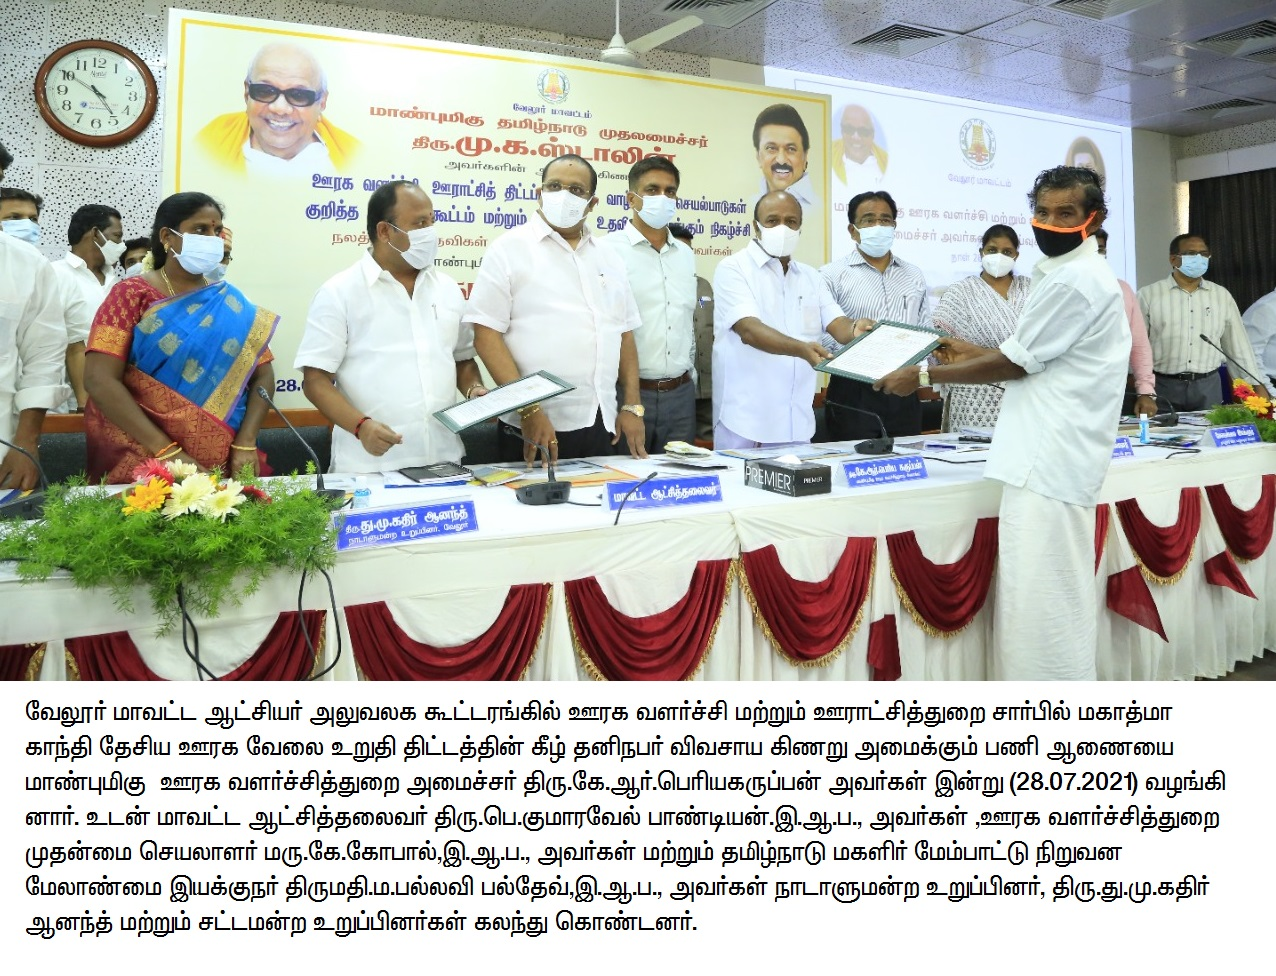 Honorable Minister Given Welfare Benefits to Public 28-07-2021